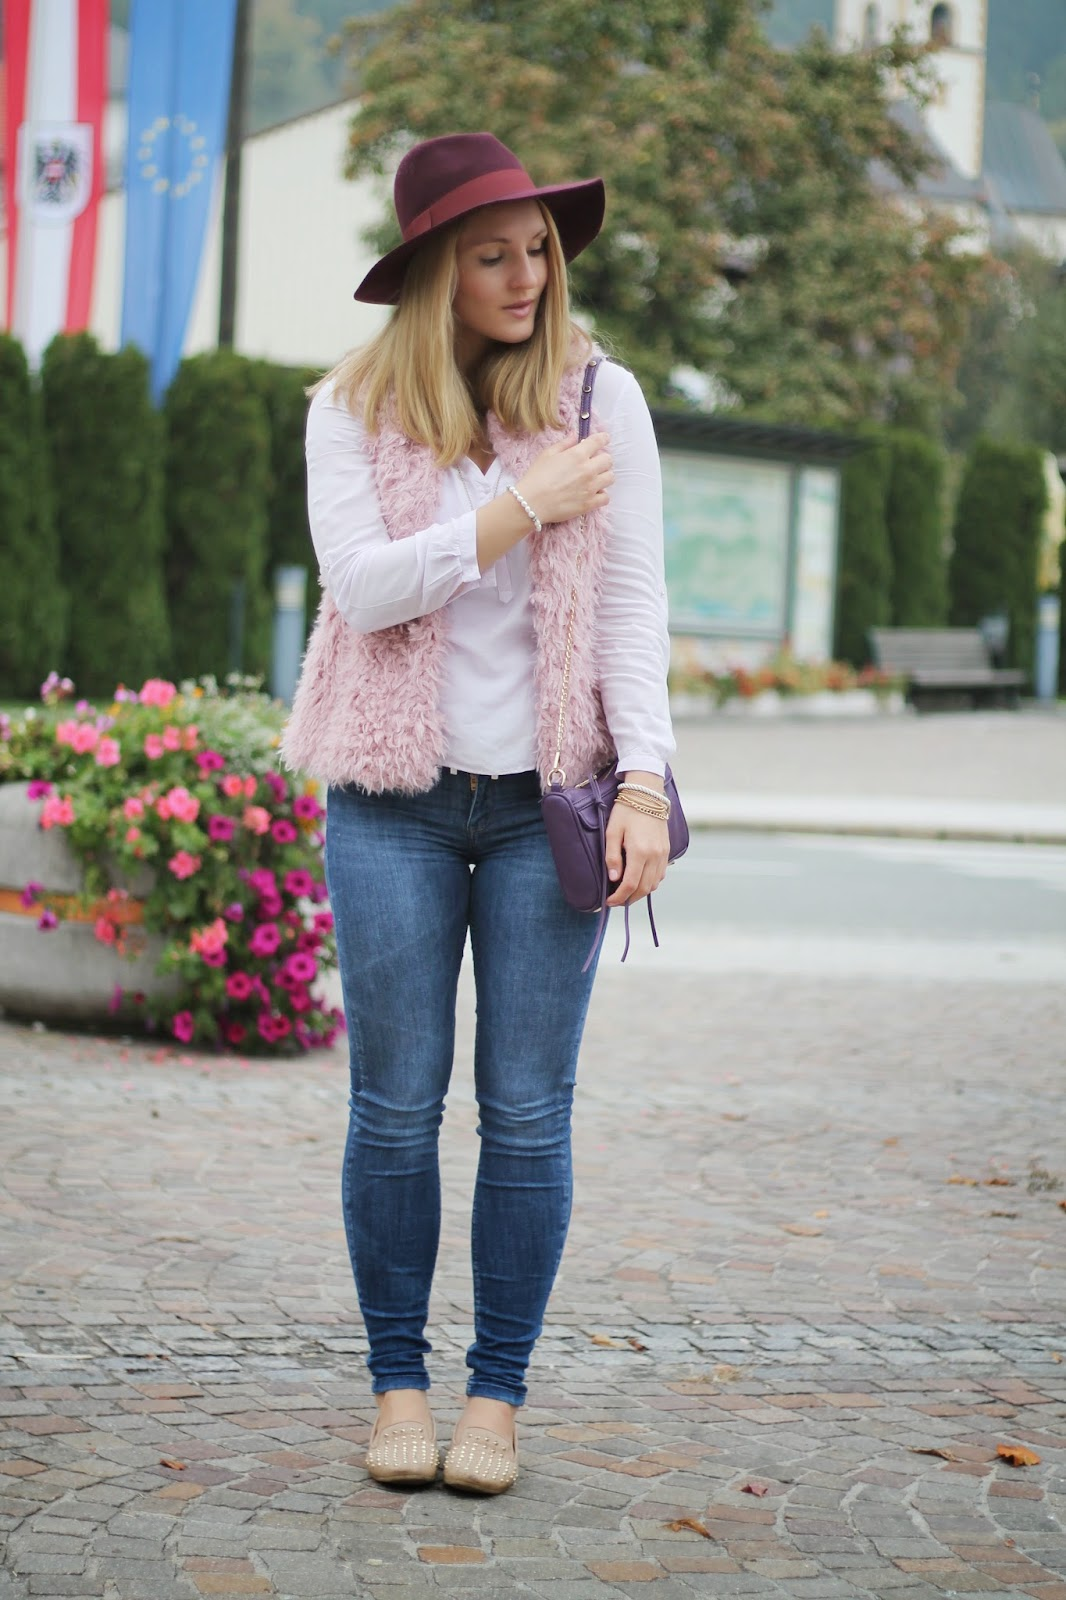 Fashionblogger Austria / Österreich / Deutsch / German / Kärnten / Carinthia / Klagenfurt / Köttmannsdorf / Spring Look / Classy / Edgy / Autumn / Autumn Style 2014 / Autumn Look / Fashionista Look / How to Style Kuschelig mit Fake Fur / Bordeaux Hat Zalando Hut Rot Dorothy Perkins / Cross Kreuz Kette Necklace / Zara Fake Fur Vest Kids Kinder Rosa / Rosa Blouse Zara / Zara Jeans Blue / Deichmann Studded Loafers Beige / Rebecca Minkoff Look a like Bag / Oasap /